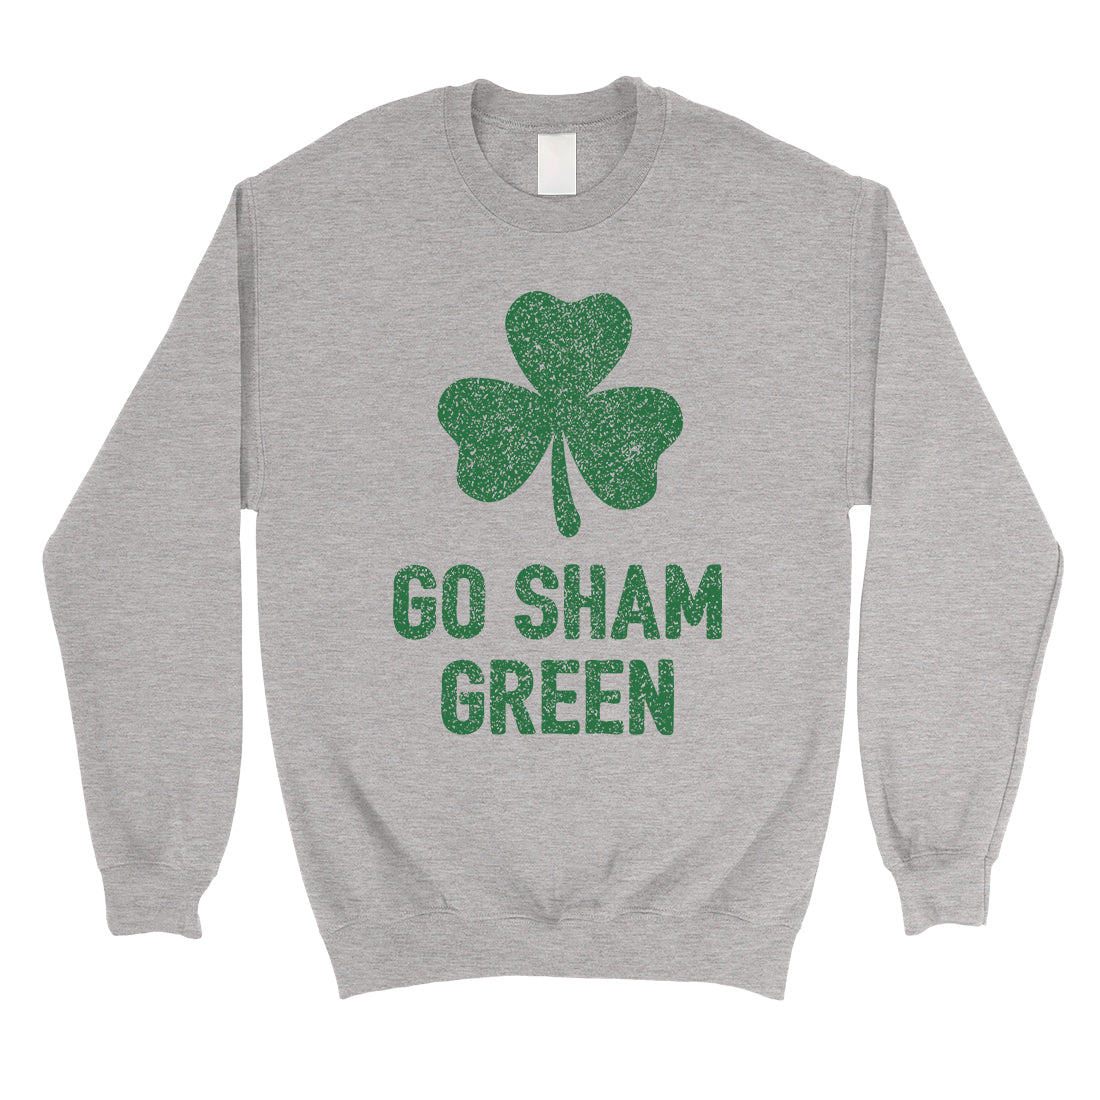 241ee033 Go Sham Green Unisex Saint Patricks Day Sweatshirt Funny Irish Gift ...